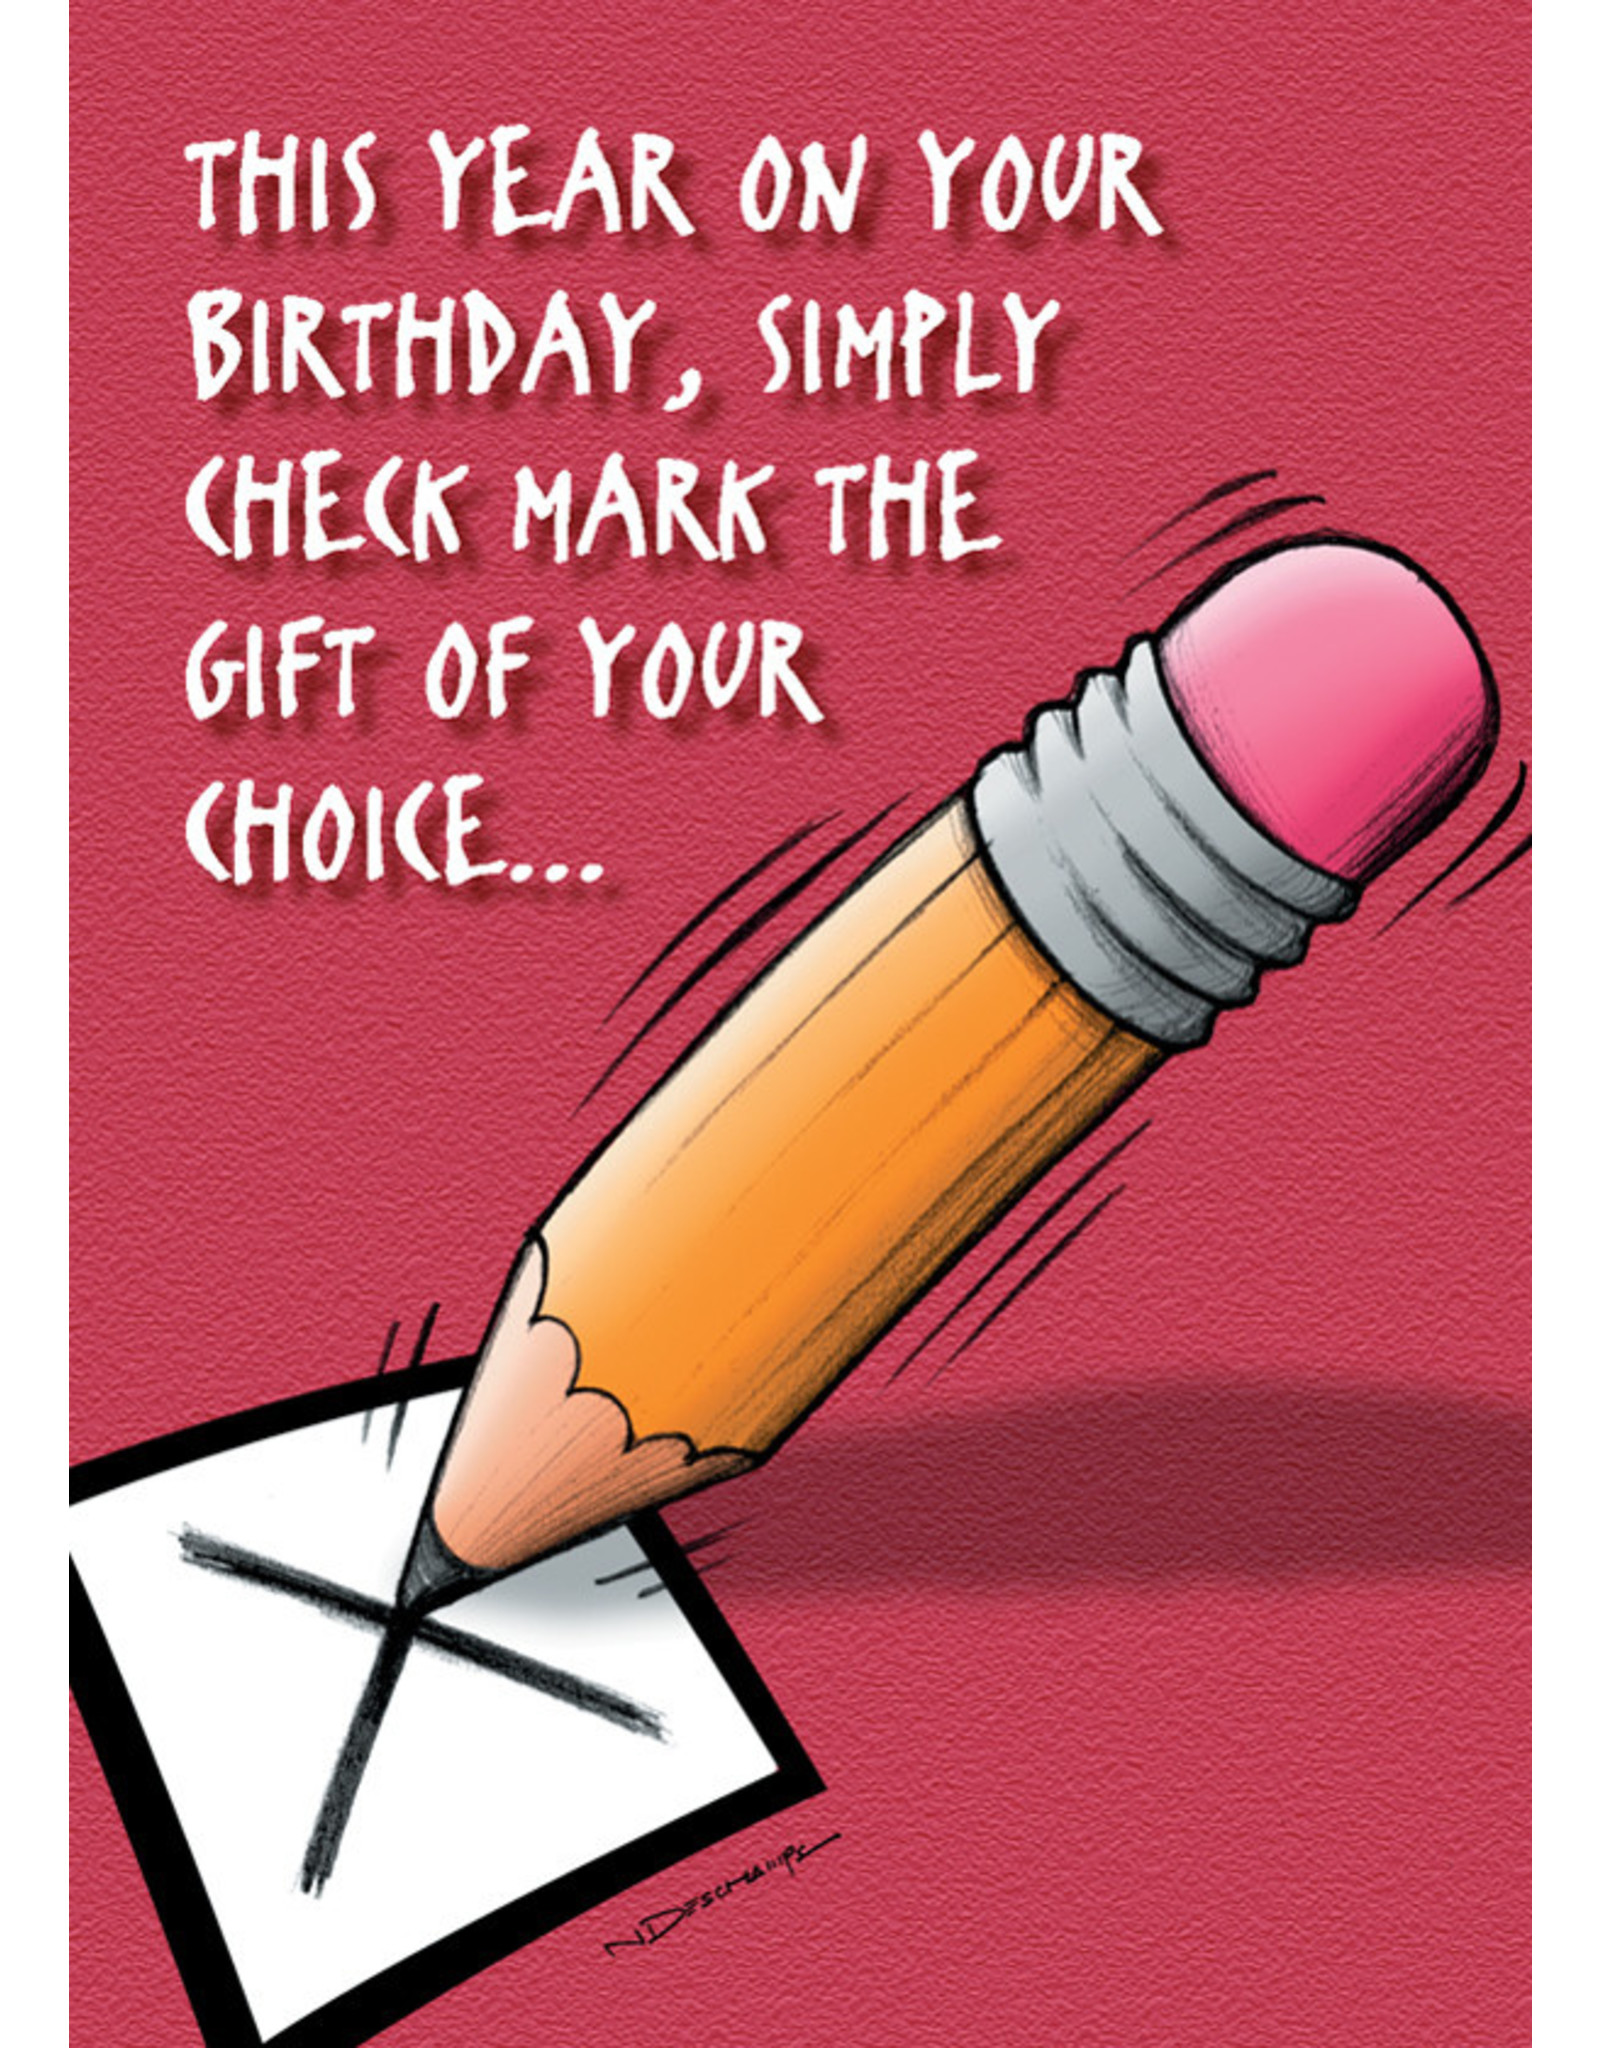 CHECK MARK THE GIFT OF YOUR CHOICE... CARD